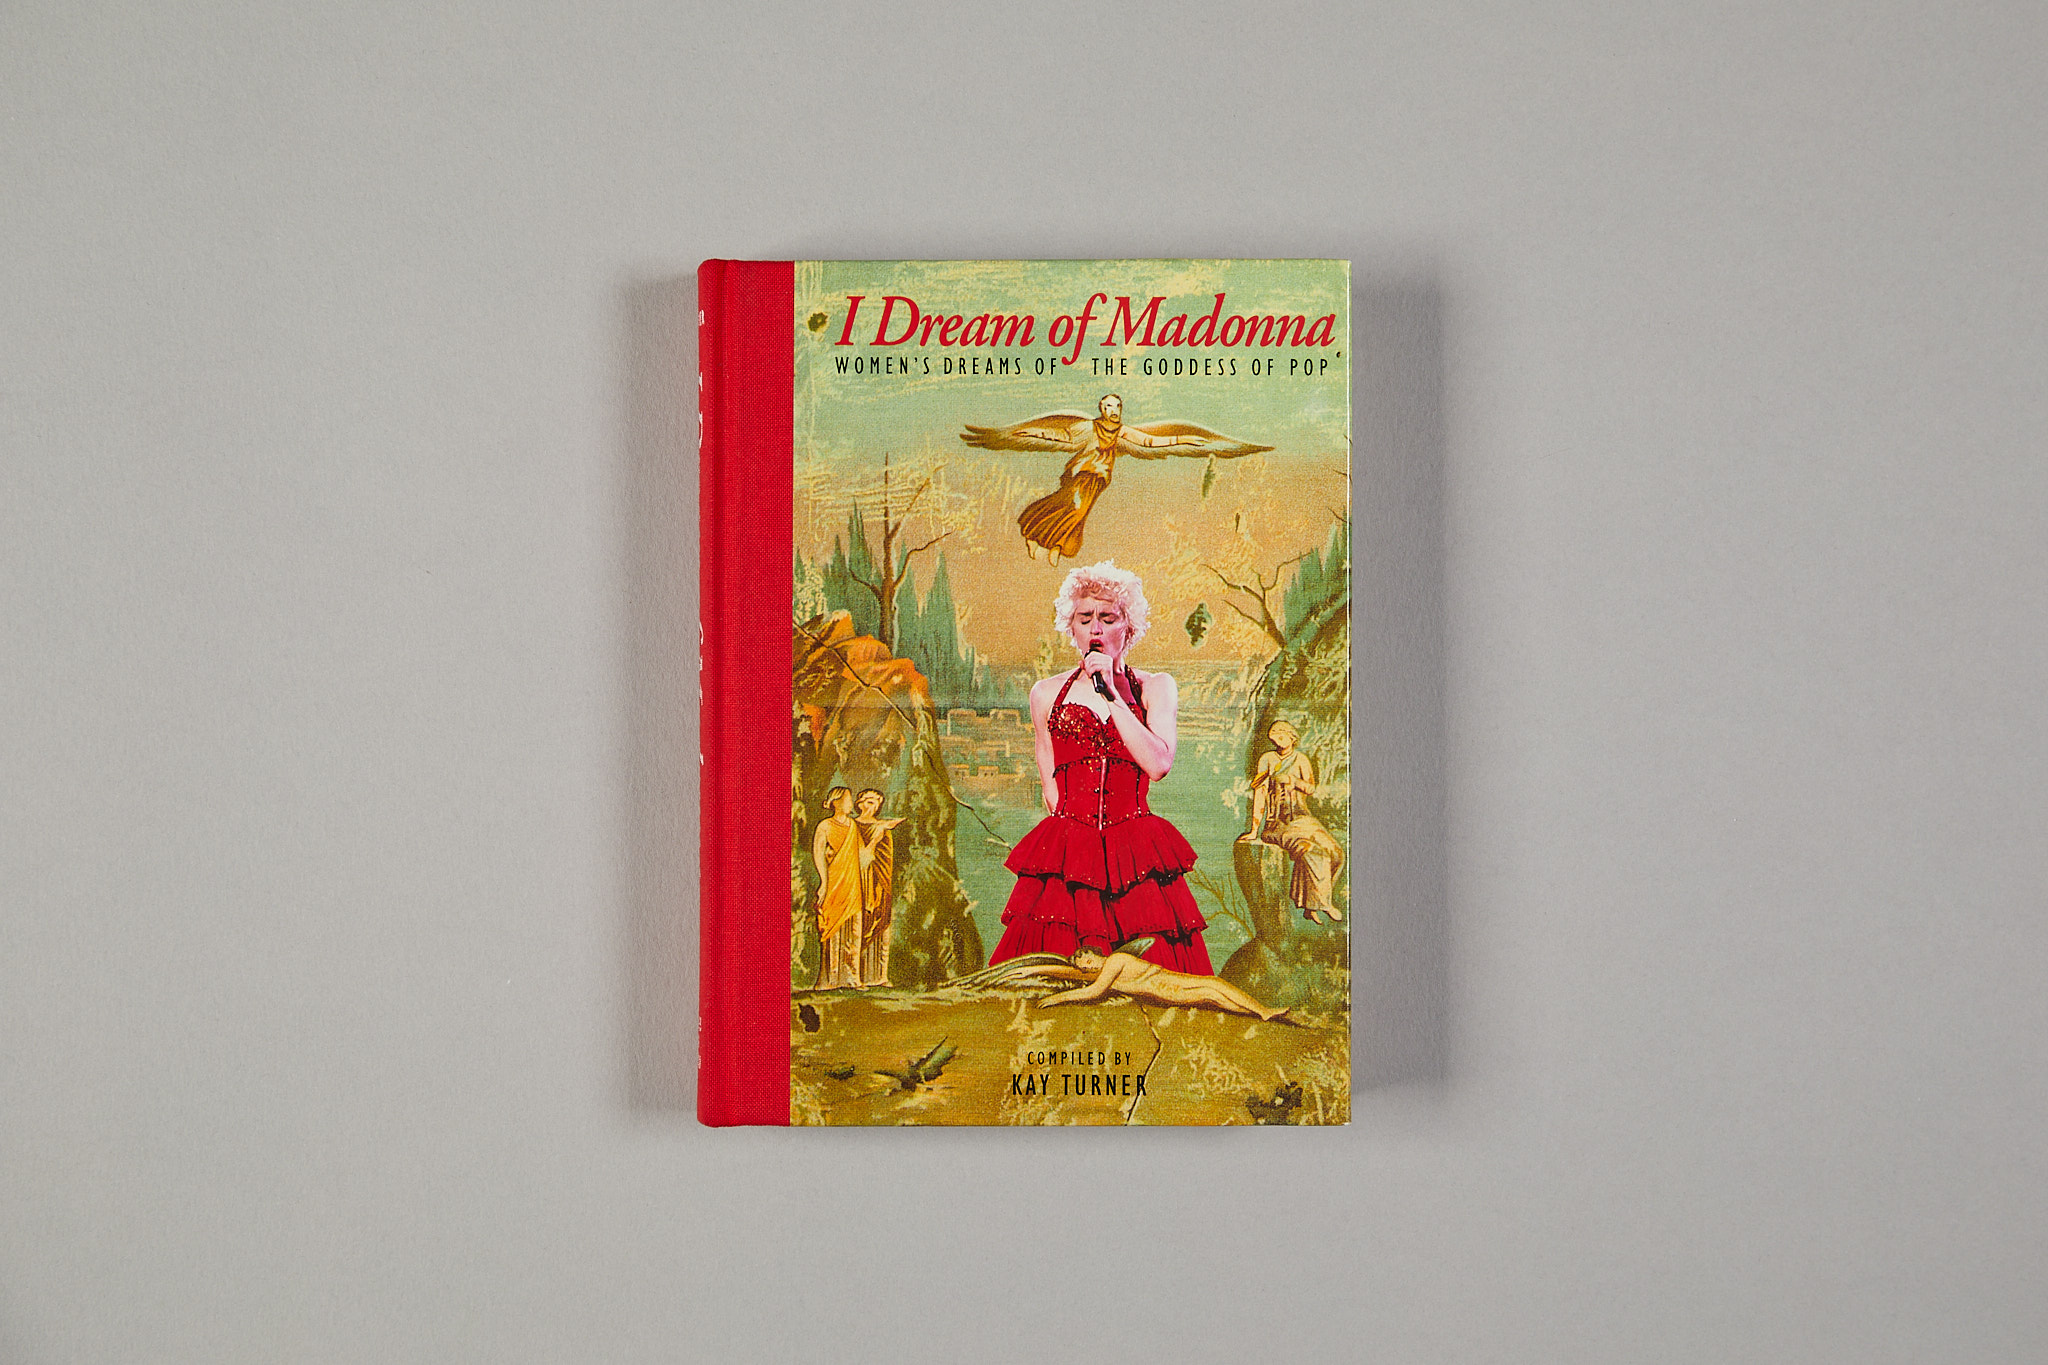 I dream of Madonna: women's dreams of the goddess of pop by Kay Turner (1993)